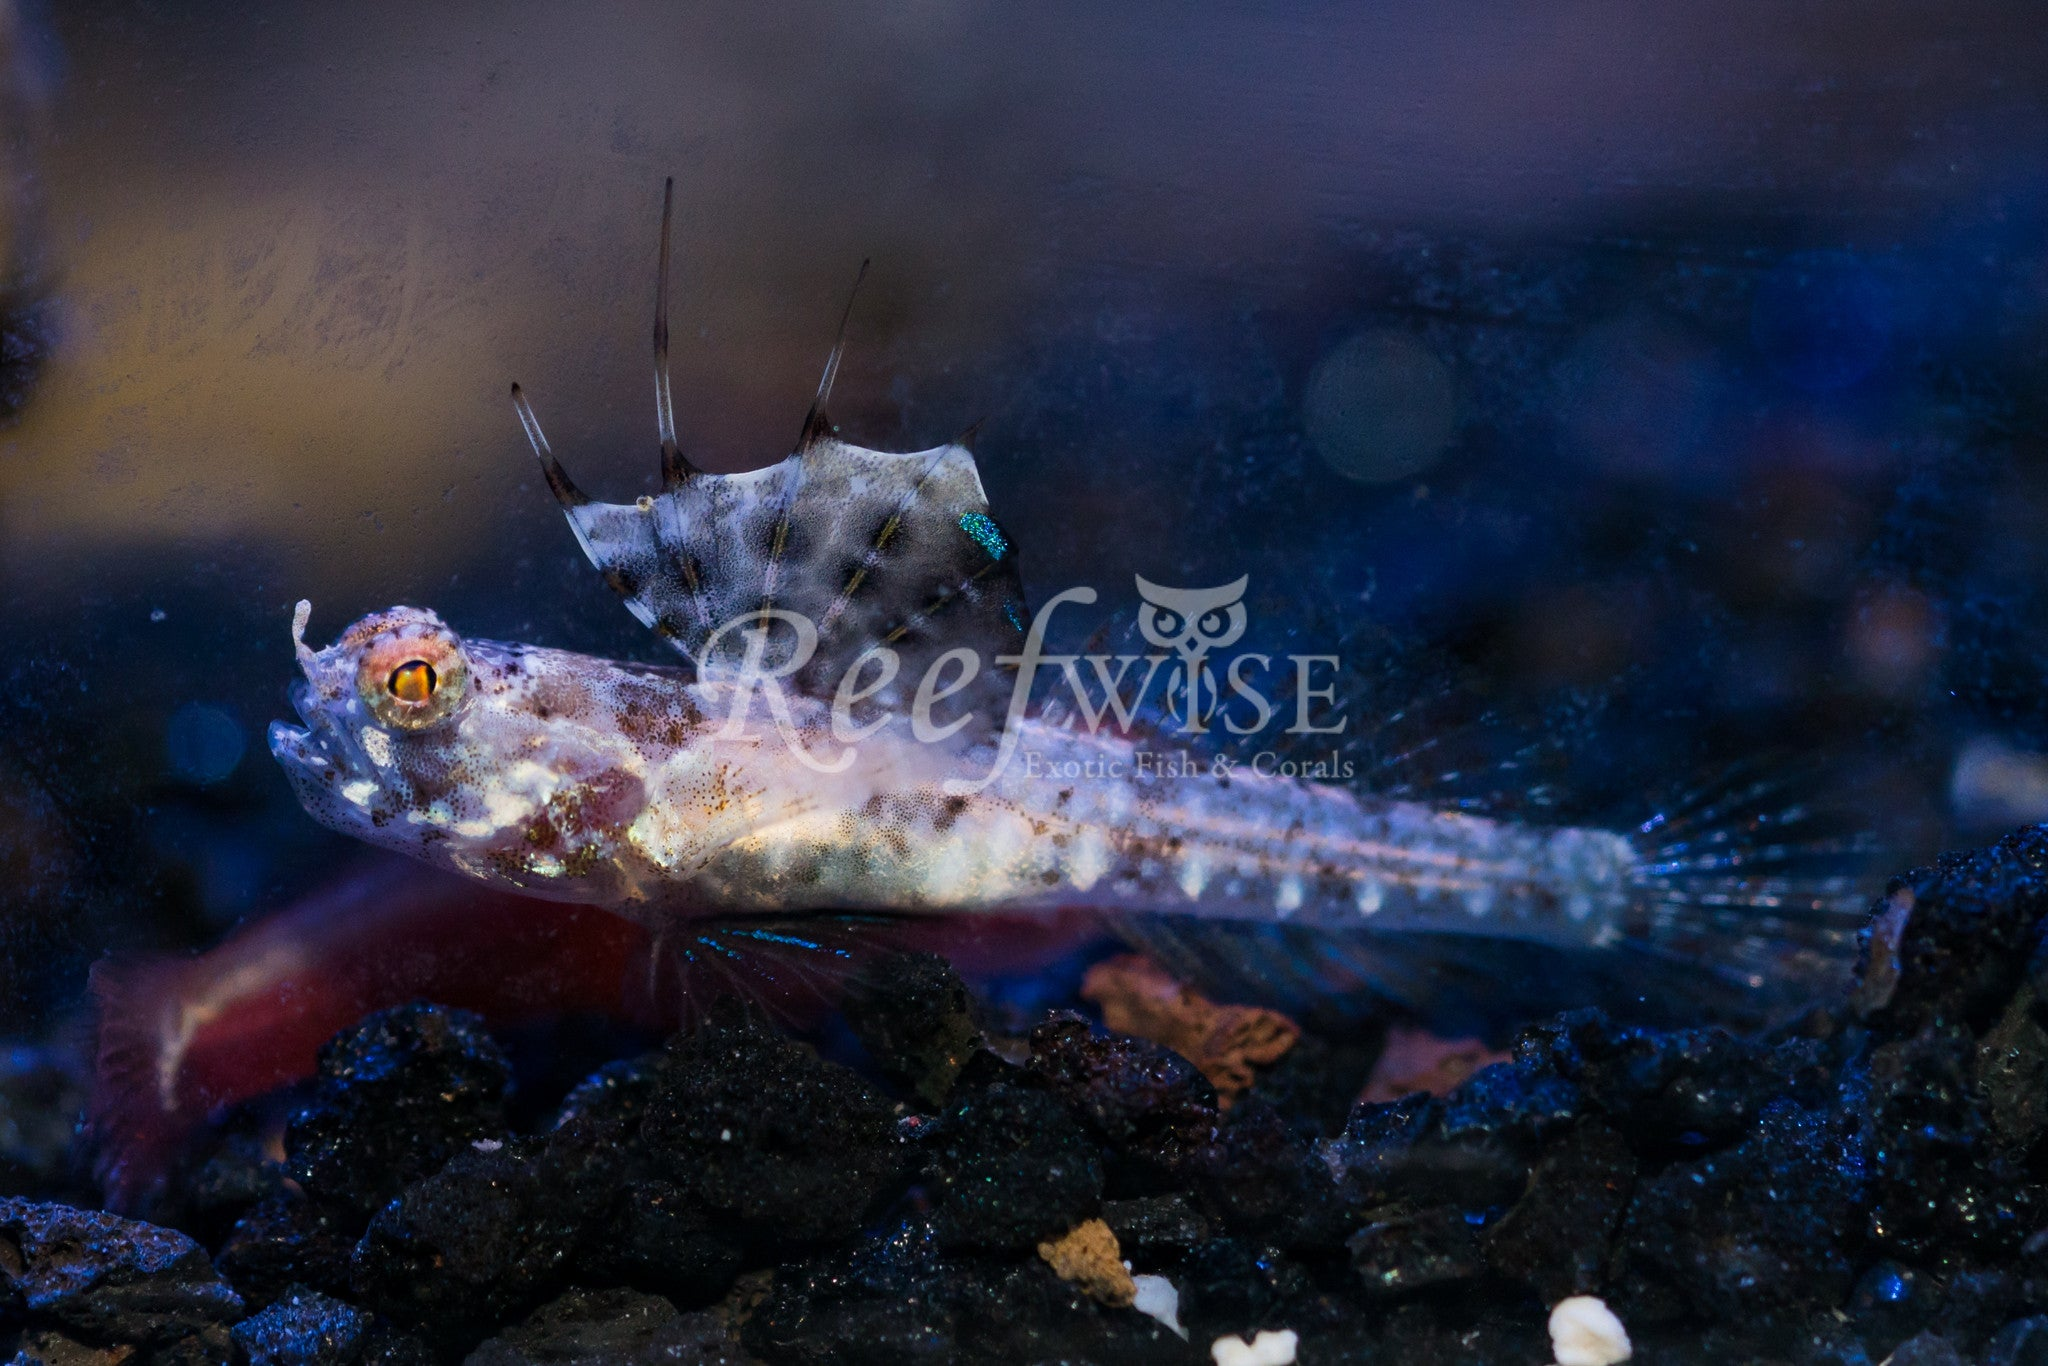 Nudus Magnificent Shrimp Goby with Shrimp